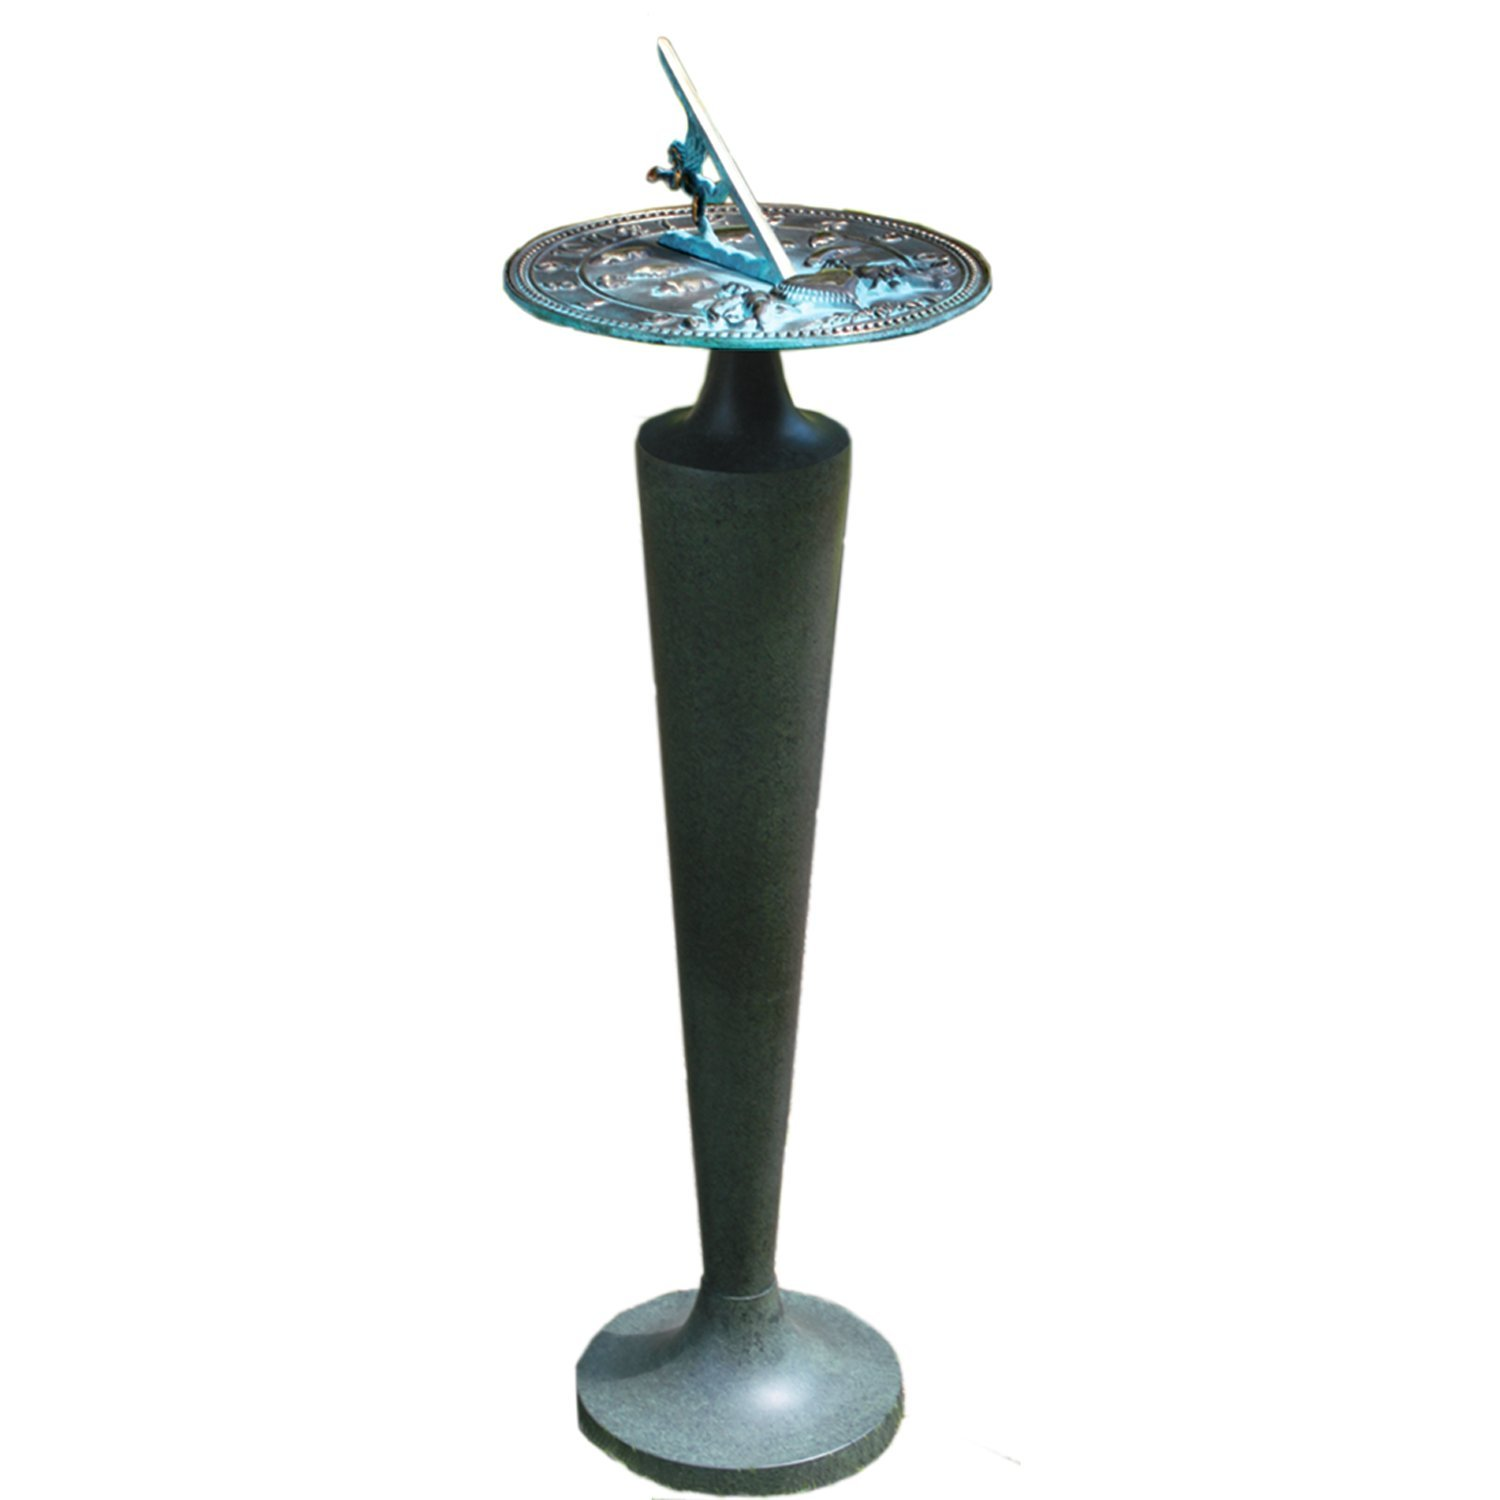 Rome B29 Aluminum Taper Sundial Pedestal, Cast Aluminum with Moss Green Patina Finish, 28-Inch Height by Rome